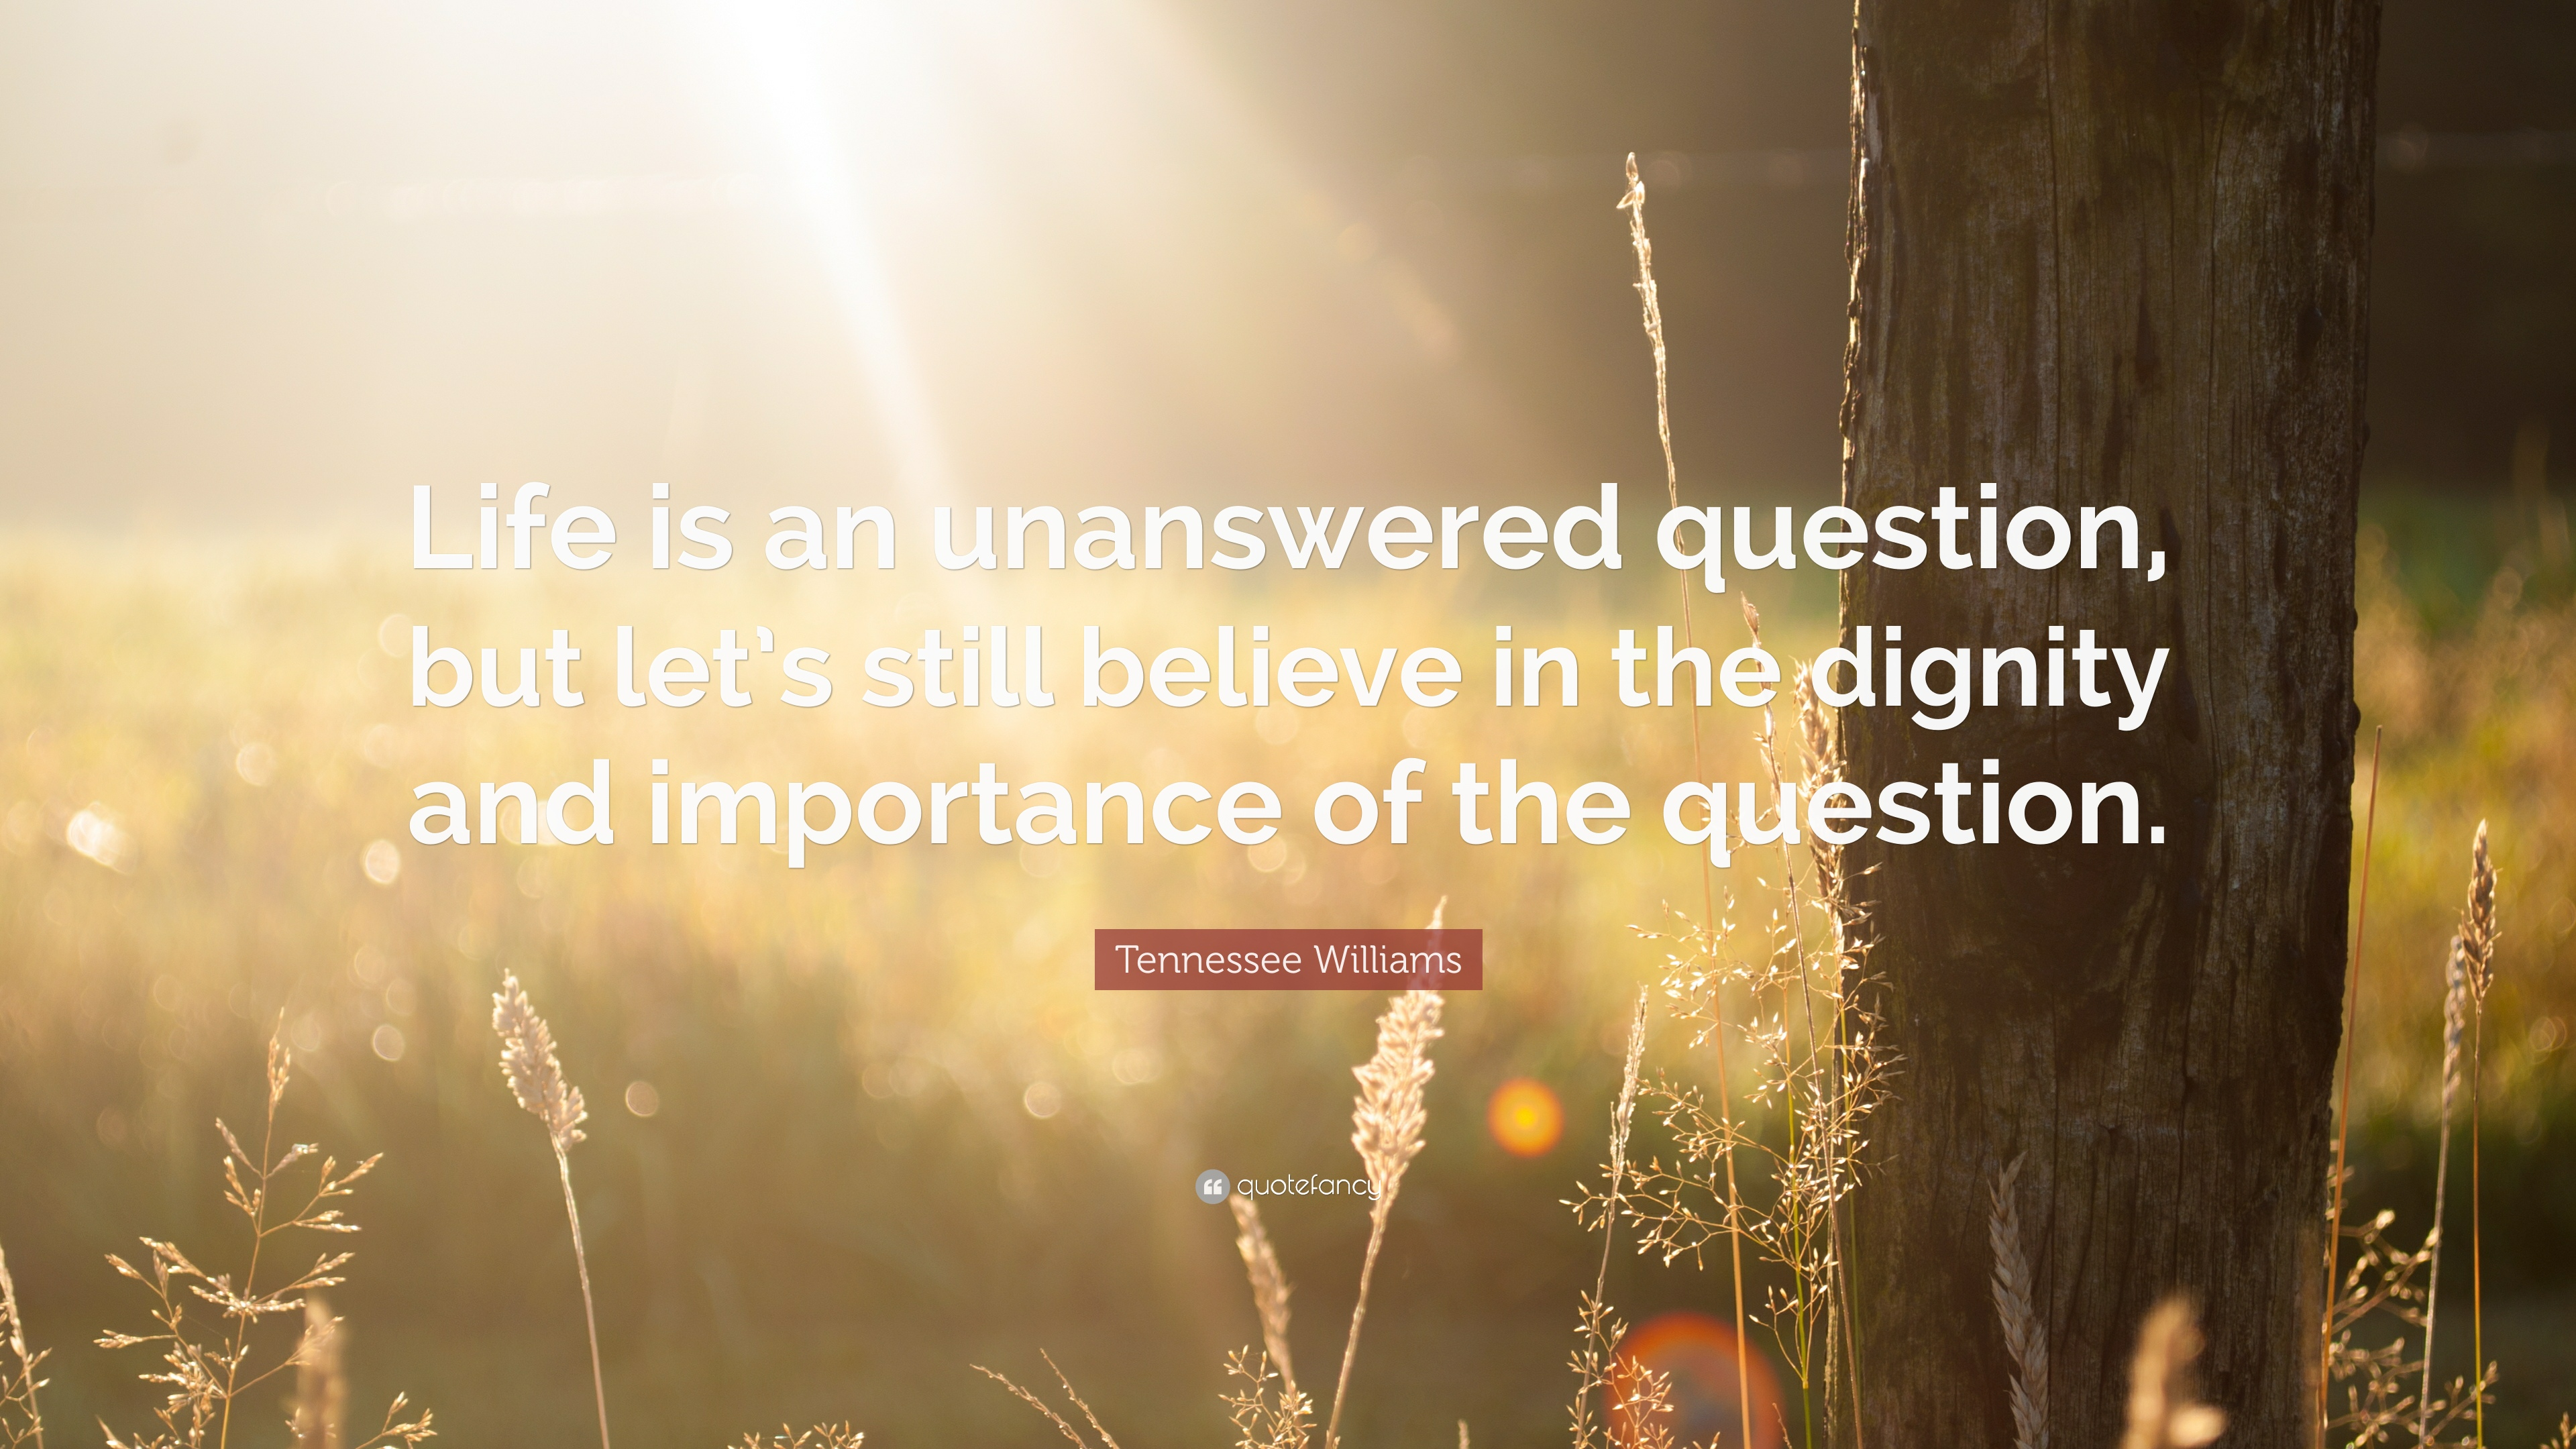 Tennessee Williams Quote Life Is An Unanswered Question But Let S